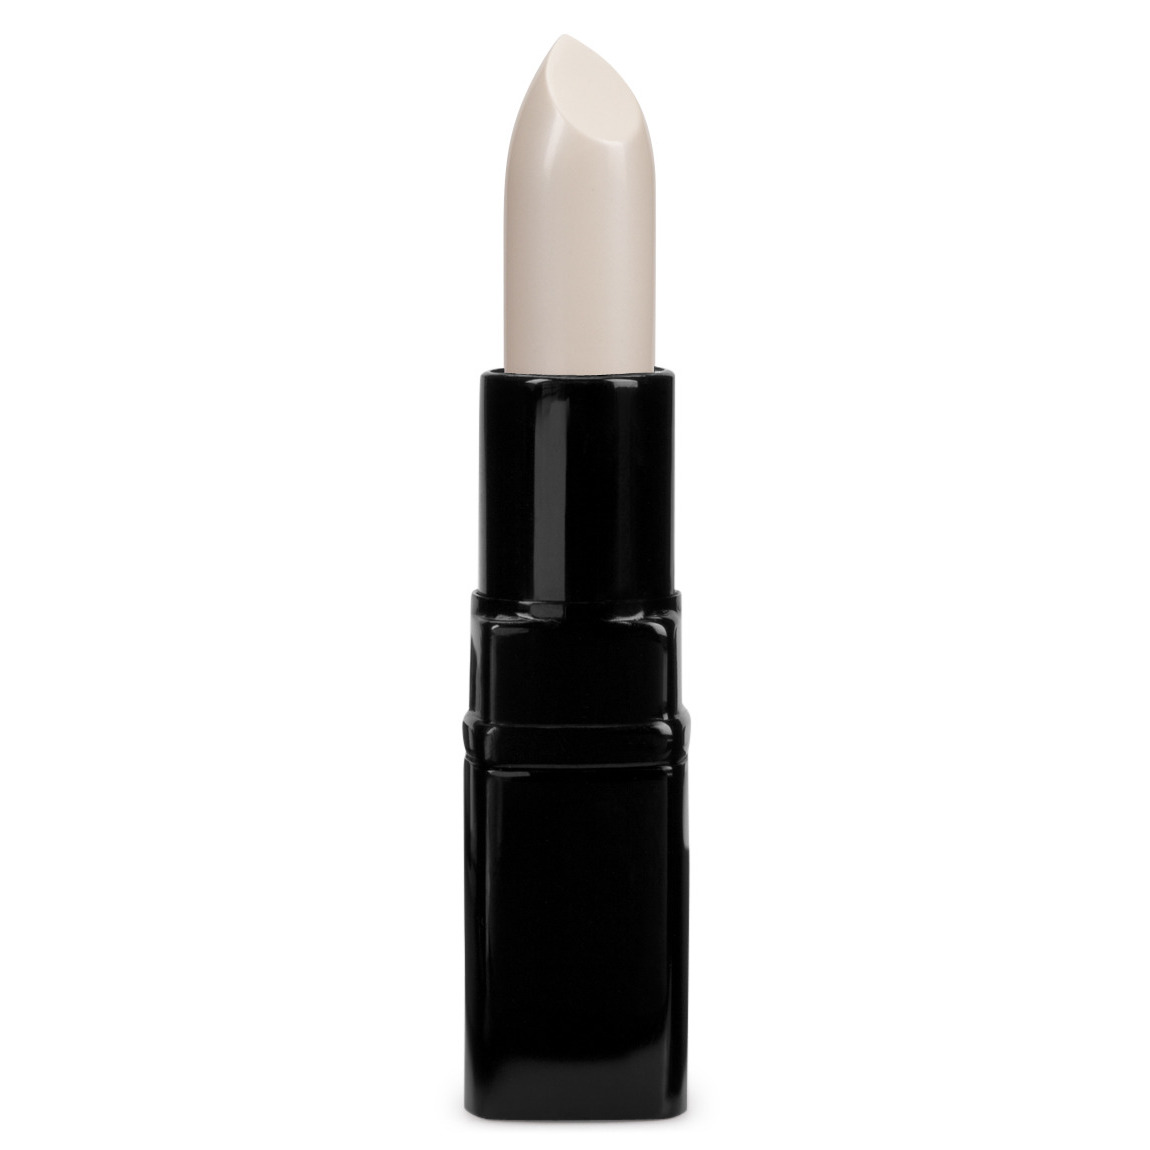 Inglot Cosmetics Lipstick 228 Cream alternative view 1.